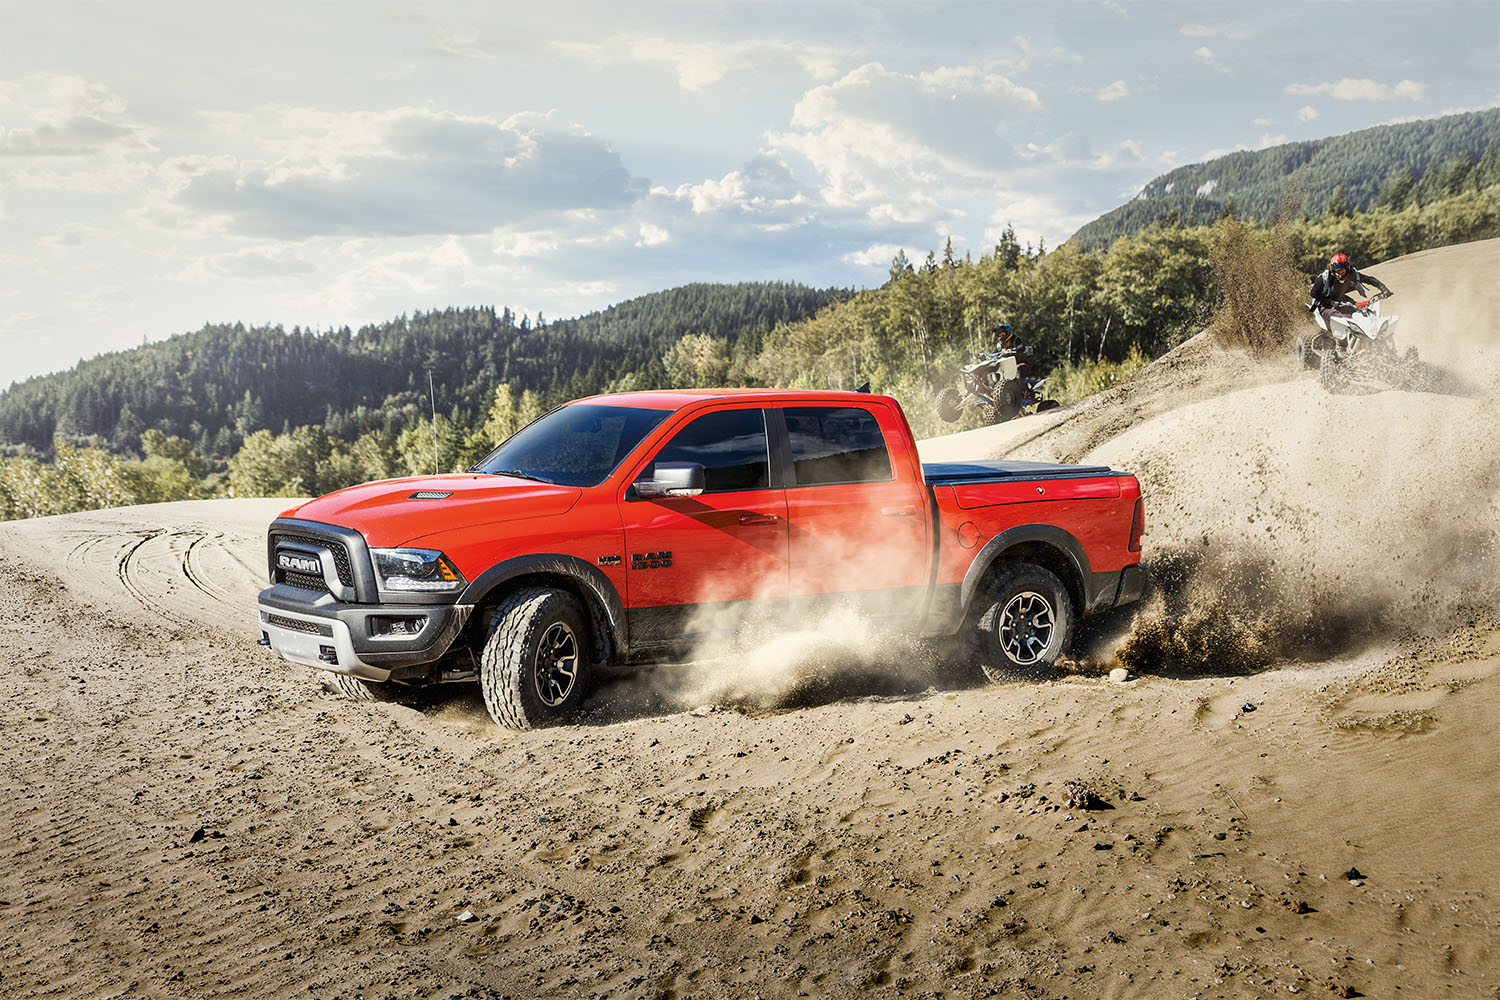 New Ram available in Laramie, WY at Snowy Range Dodge Jeep Ram Chrysler